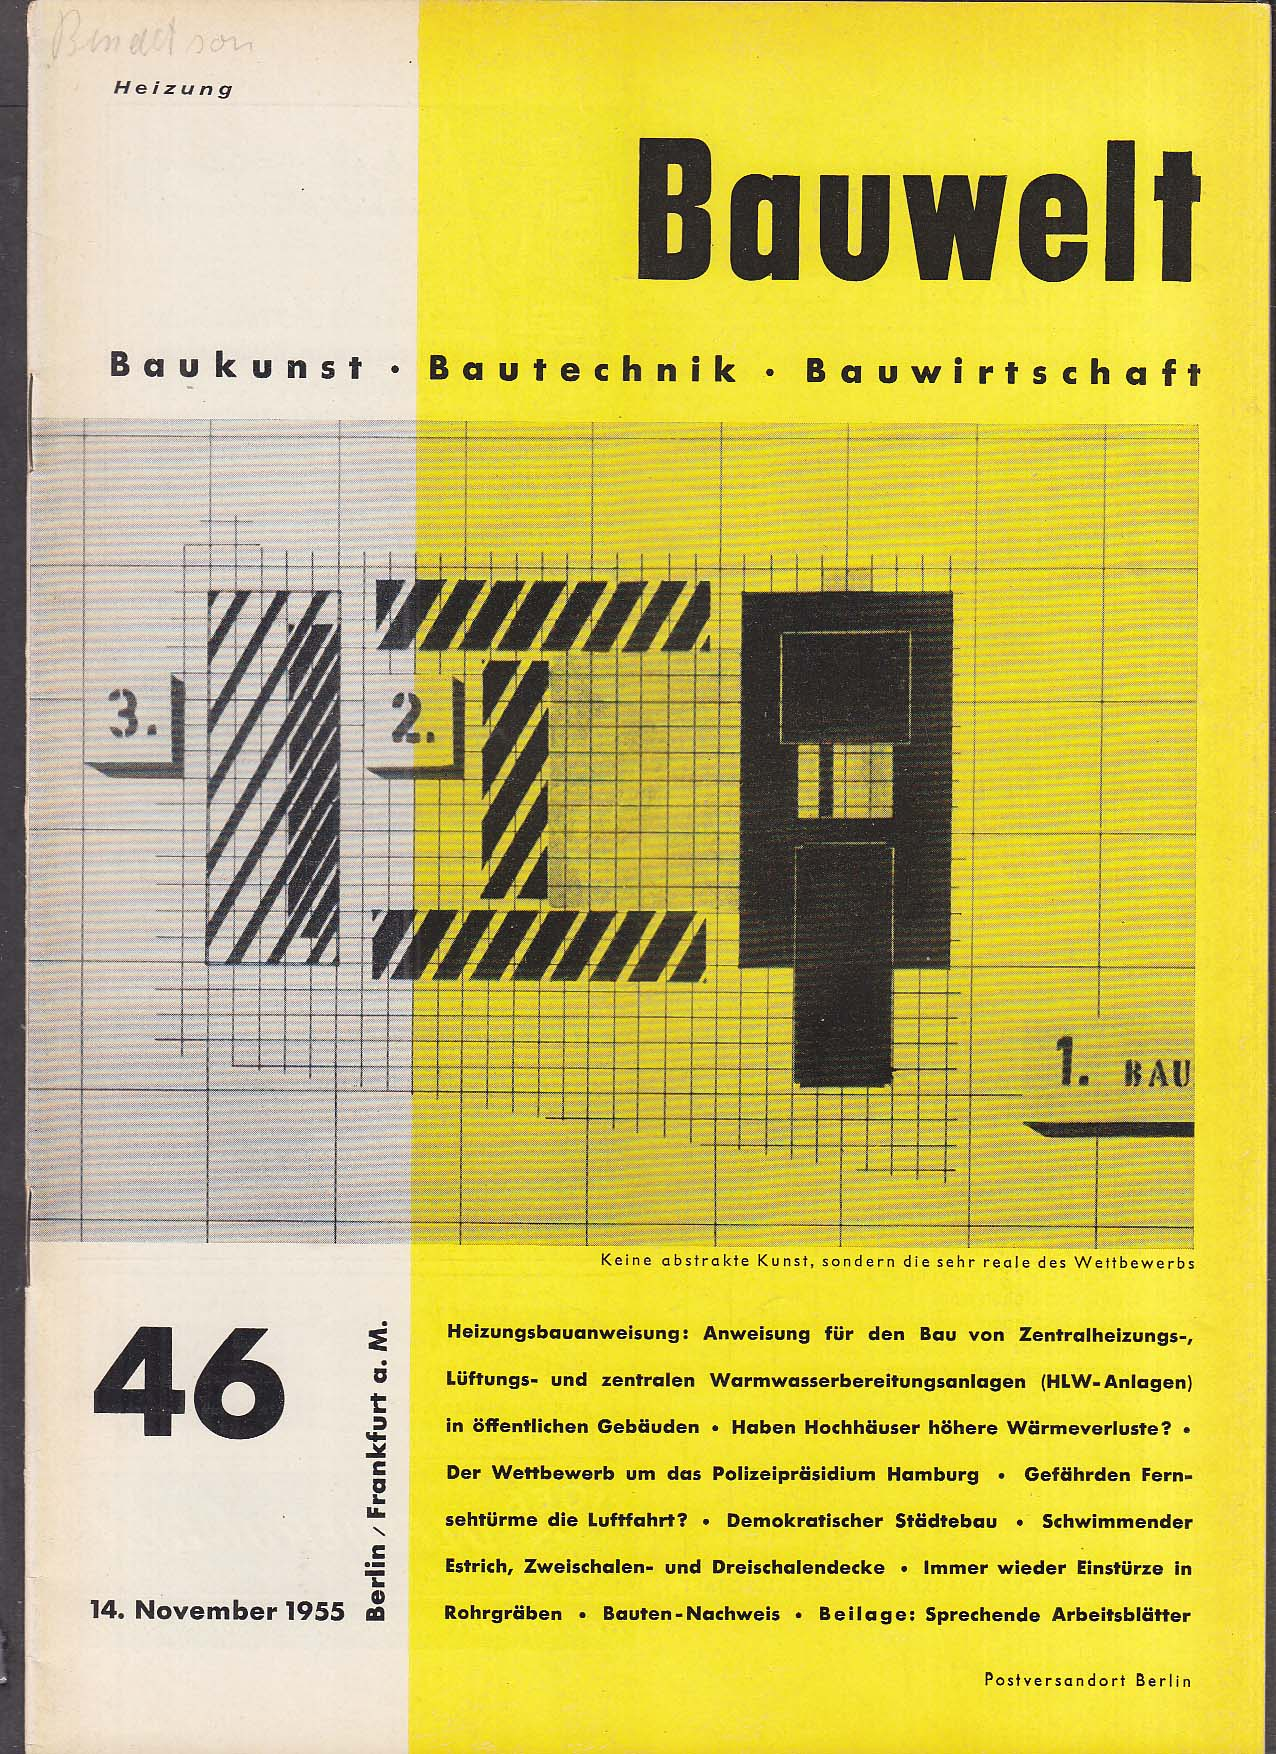 Bauwelt German architecture magazine 11/14/1955 46